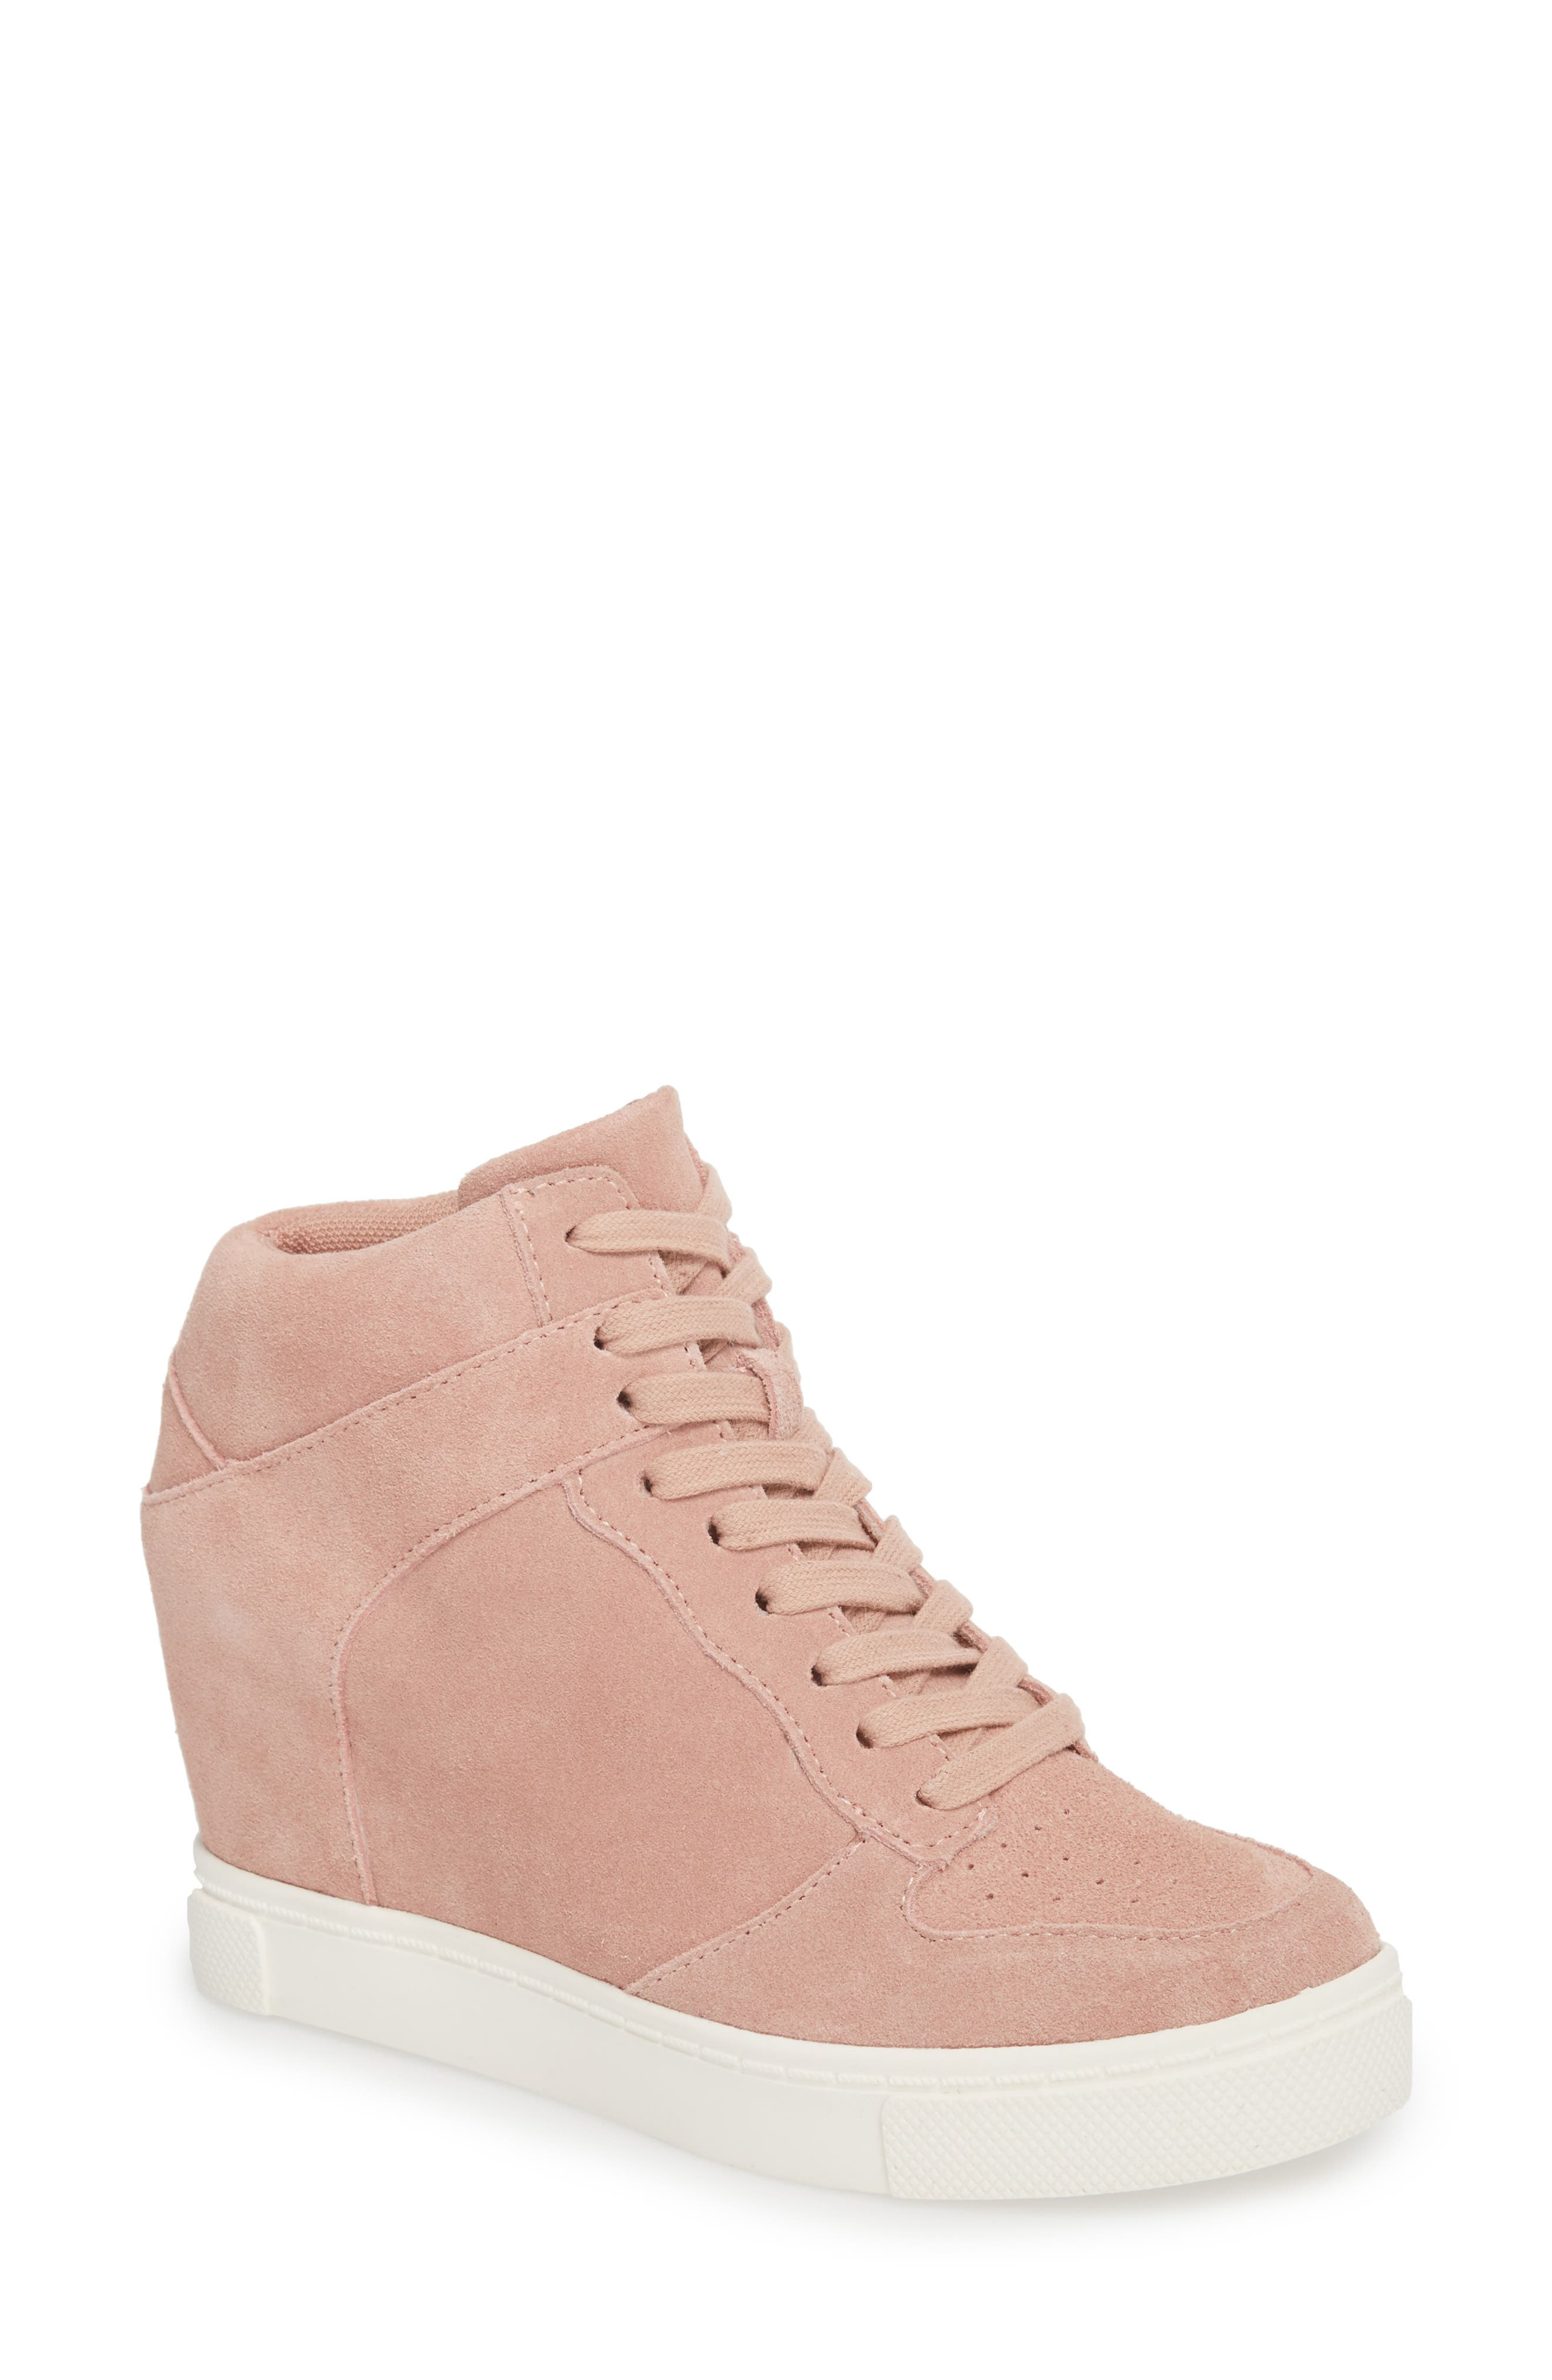 NOAH HIDDEN WEDGE SNEAKER